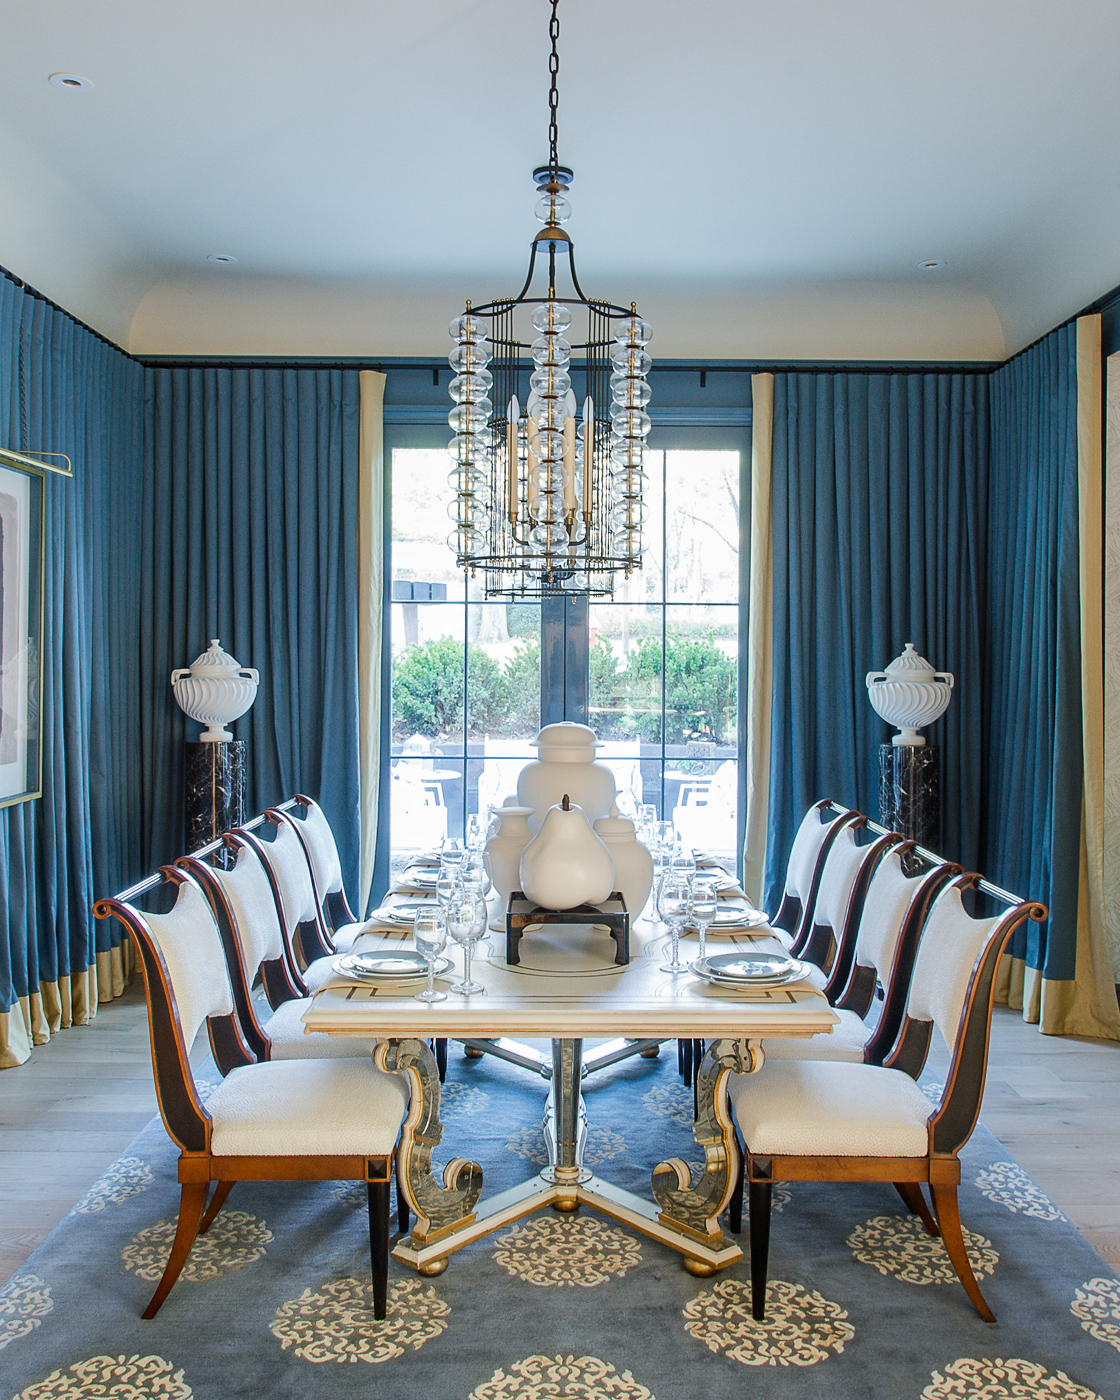 Blue drapery-lined dining room inspired by the White House Blue Room decorated by Maison Jansen in 1962 | Savage Interior Design